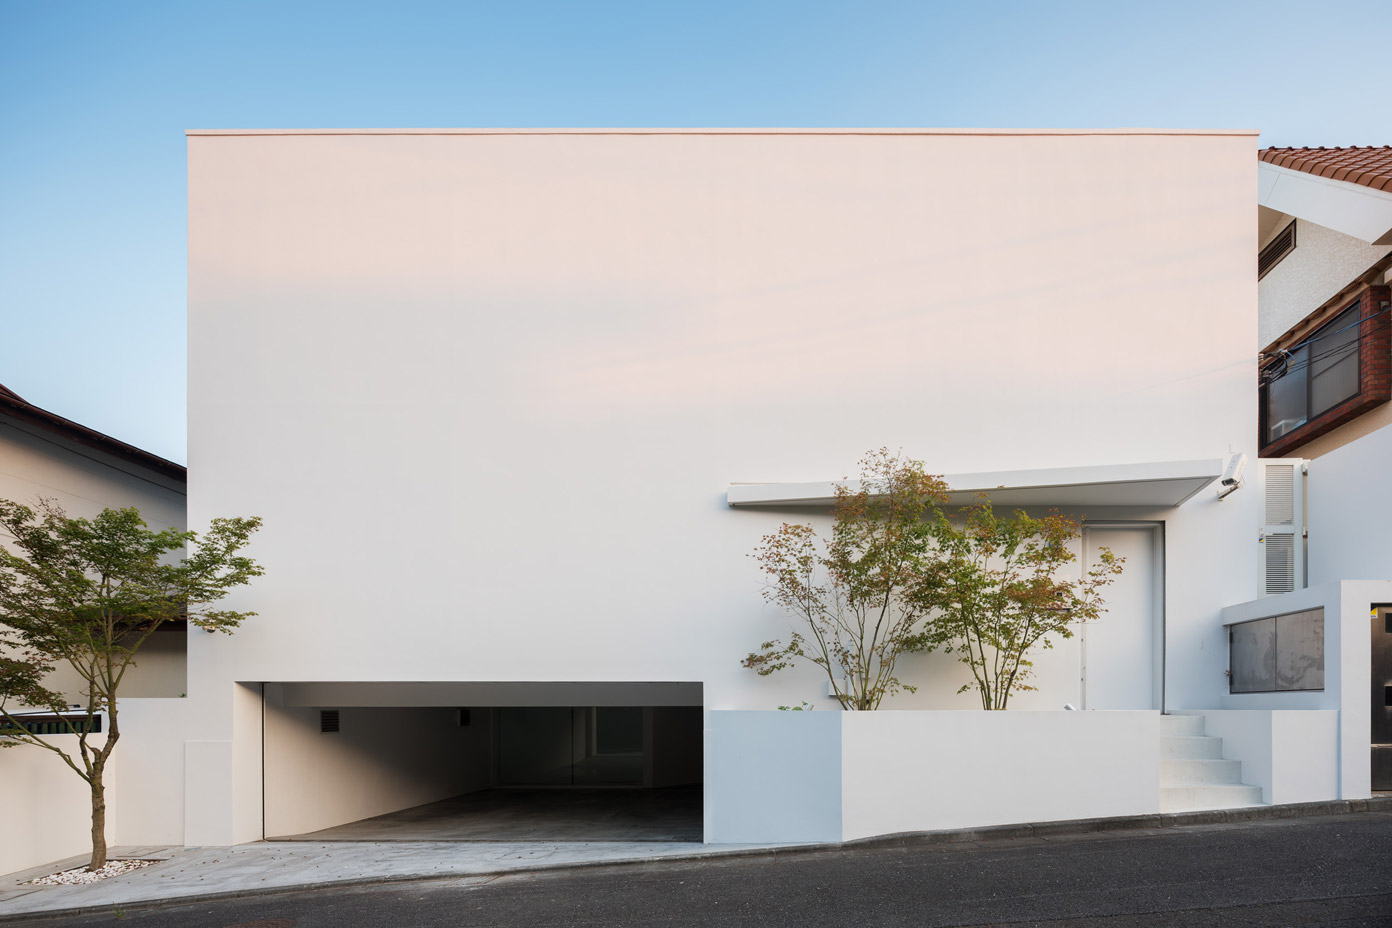 Shichirigahama House by architecture firm SNARK.